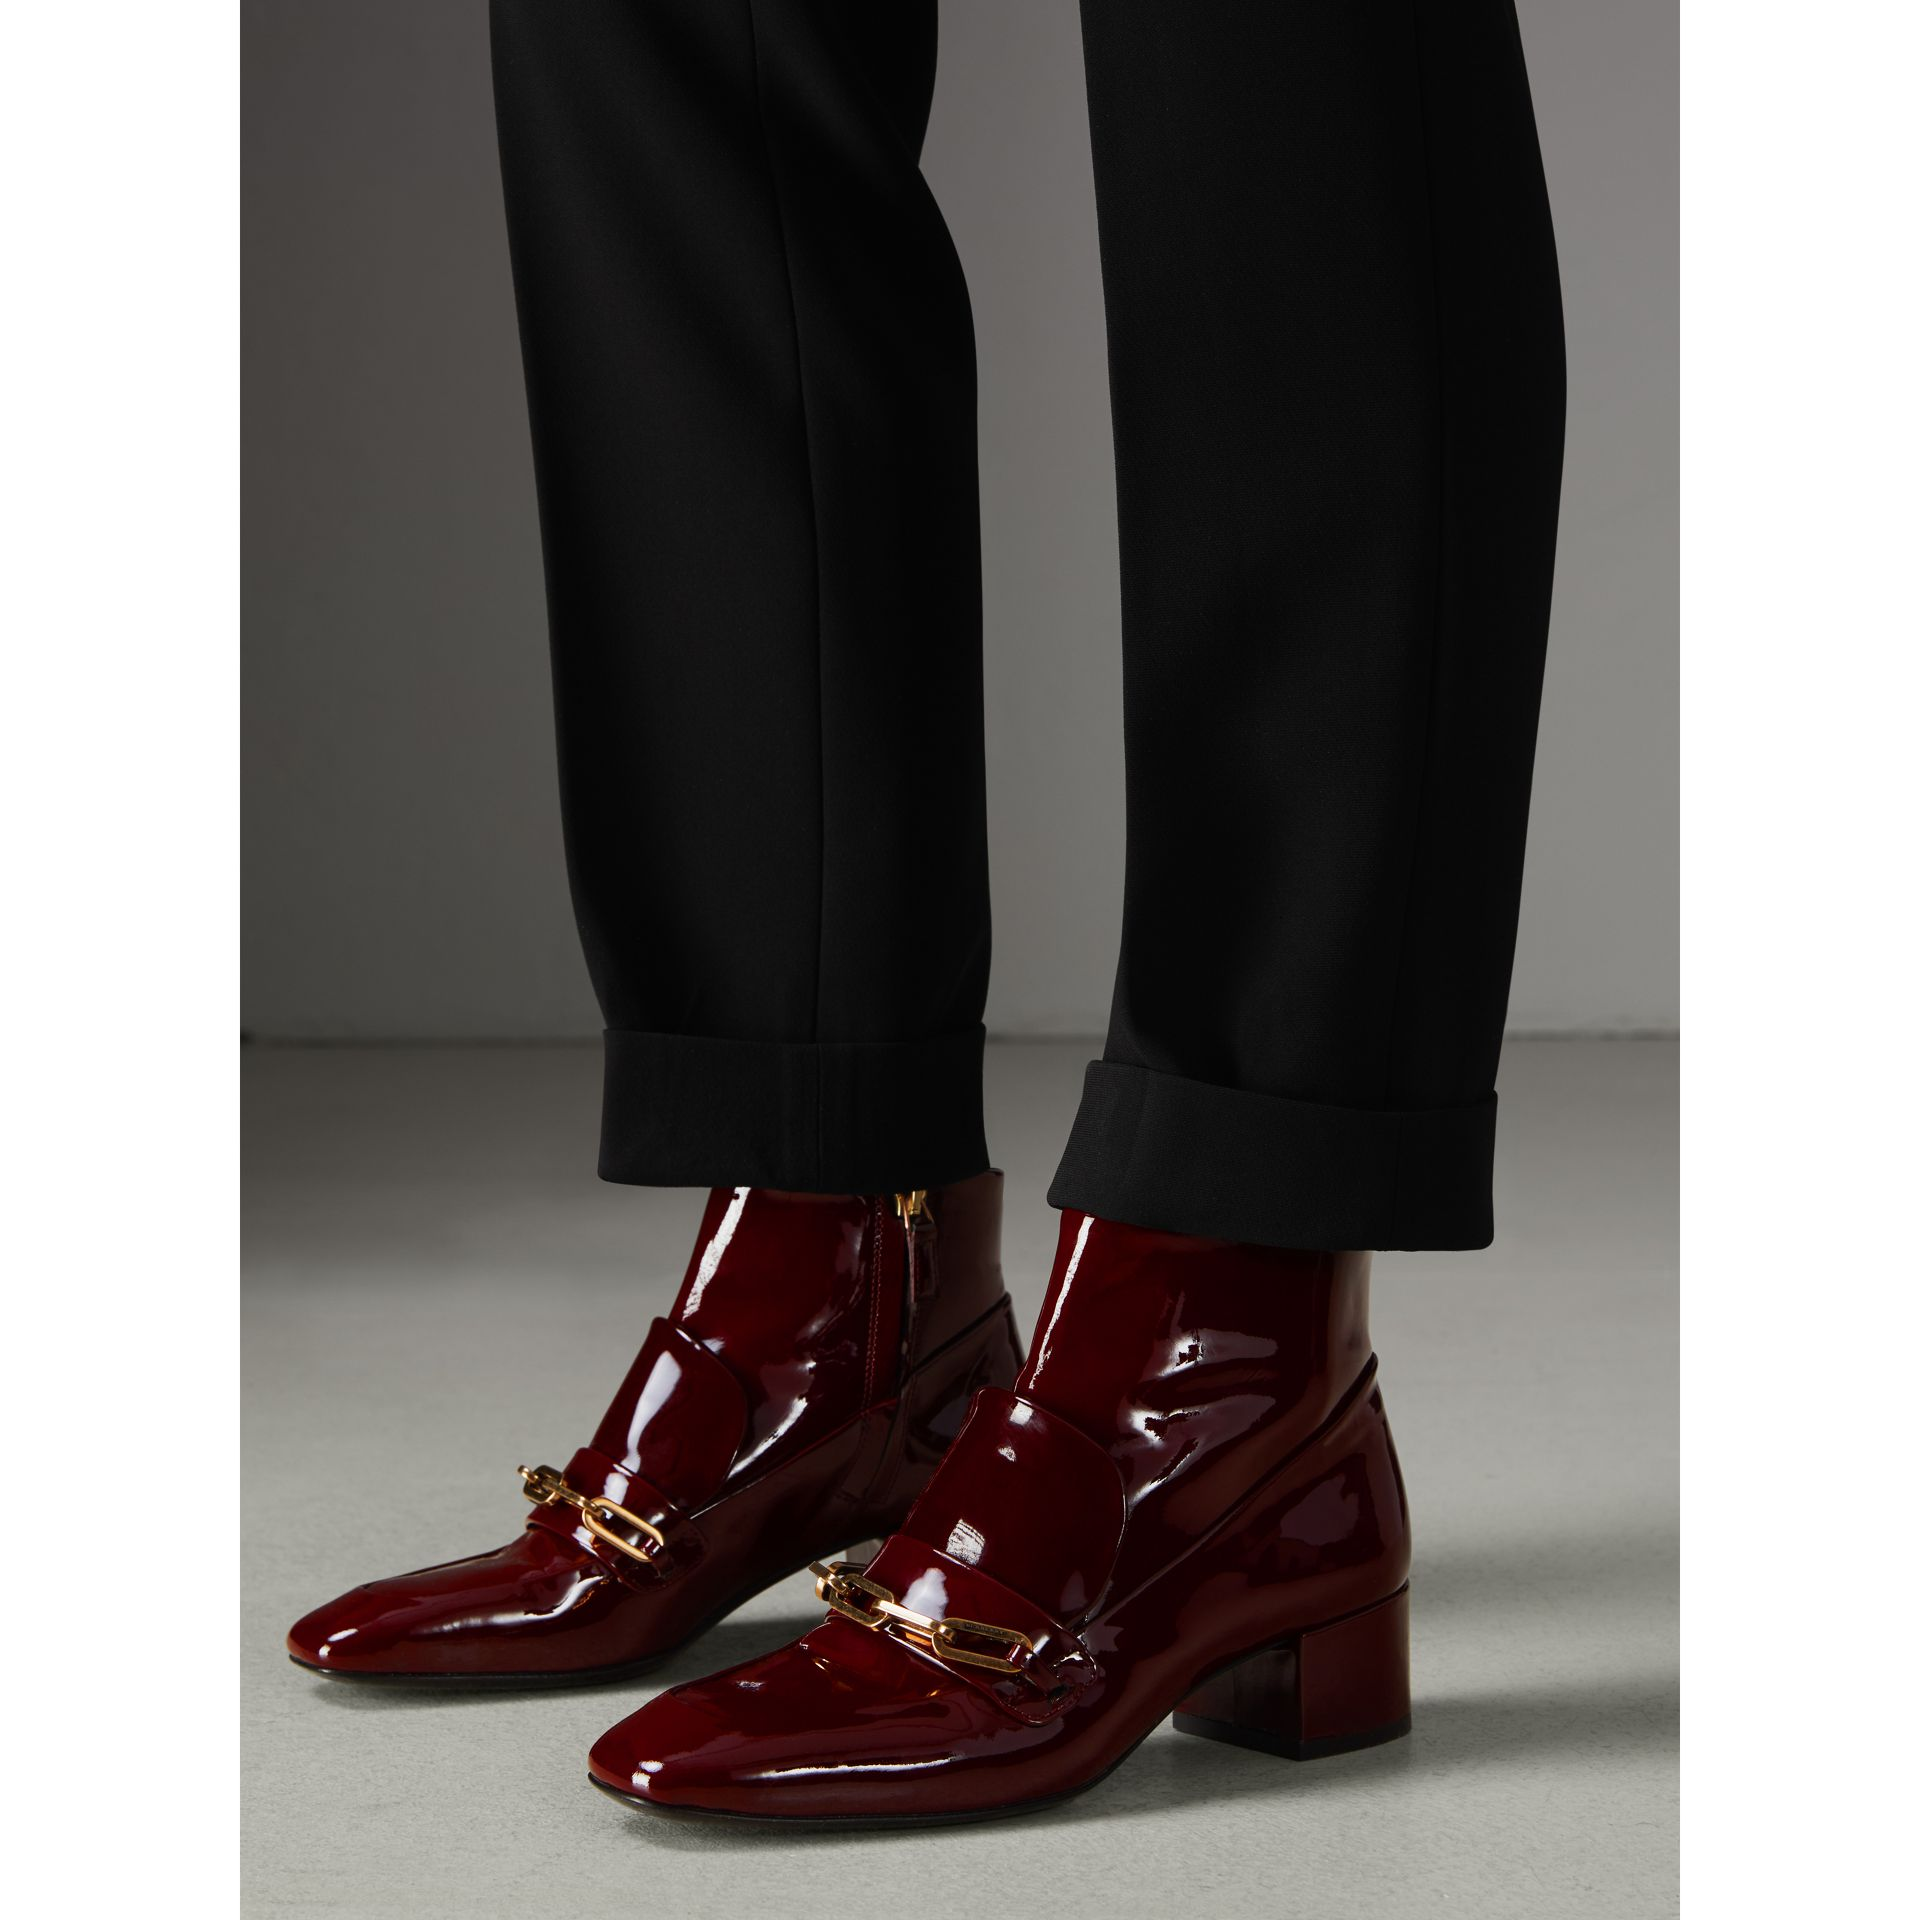 Link Detail Patent Leather Ankle Boots in Burgundy Red - Women | Burberry Australia - gallery image 2